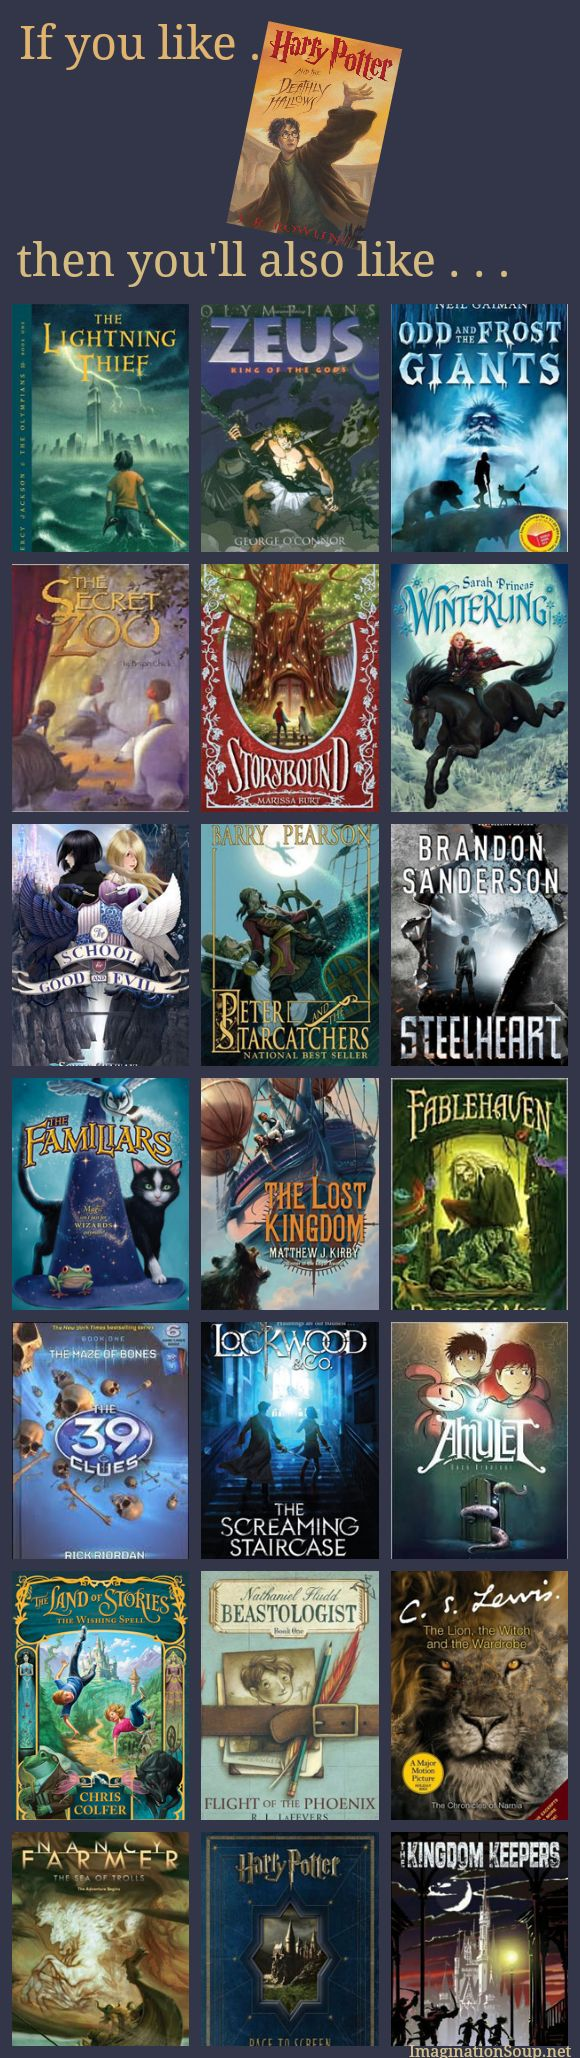 26 Books for Kids Who Love Harry Potter - great list for summer reading